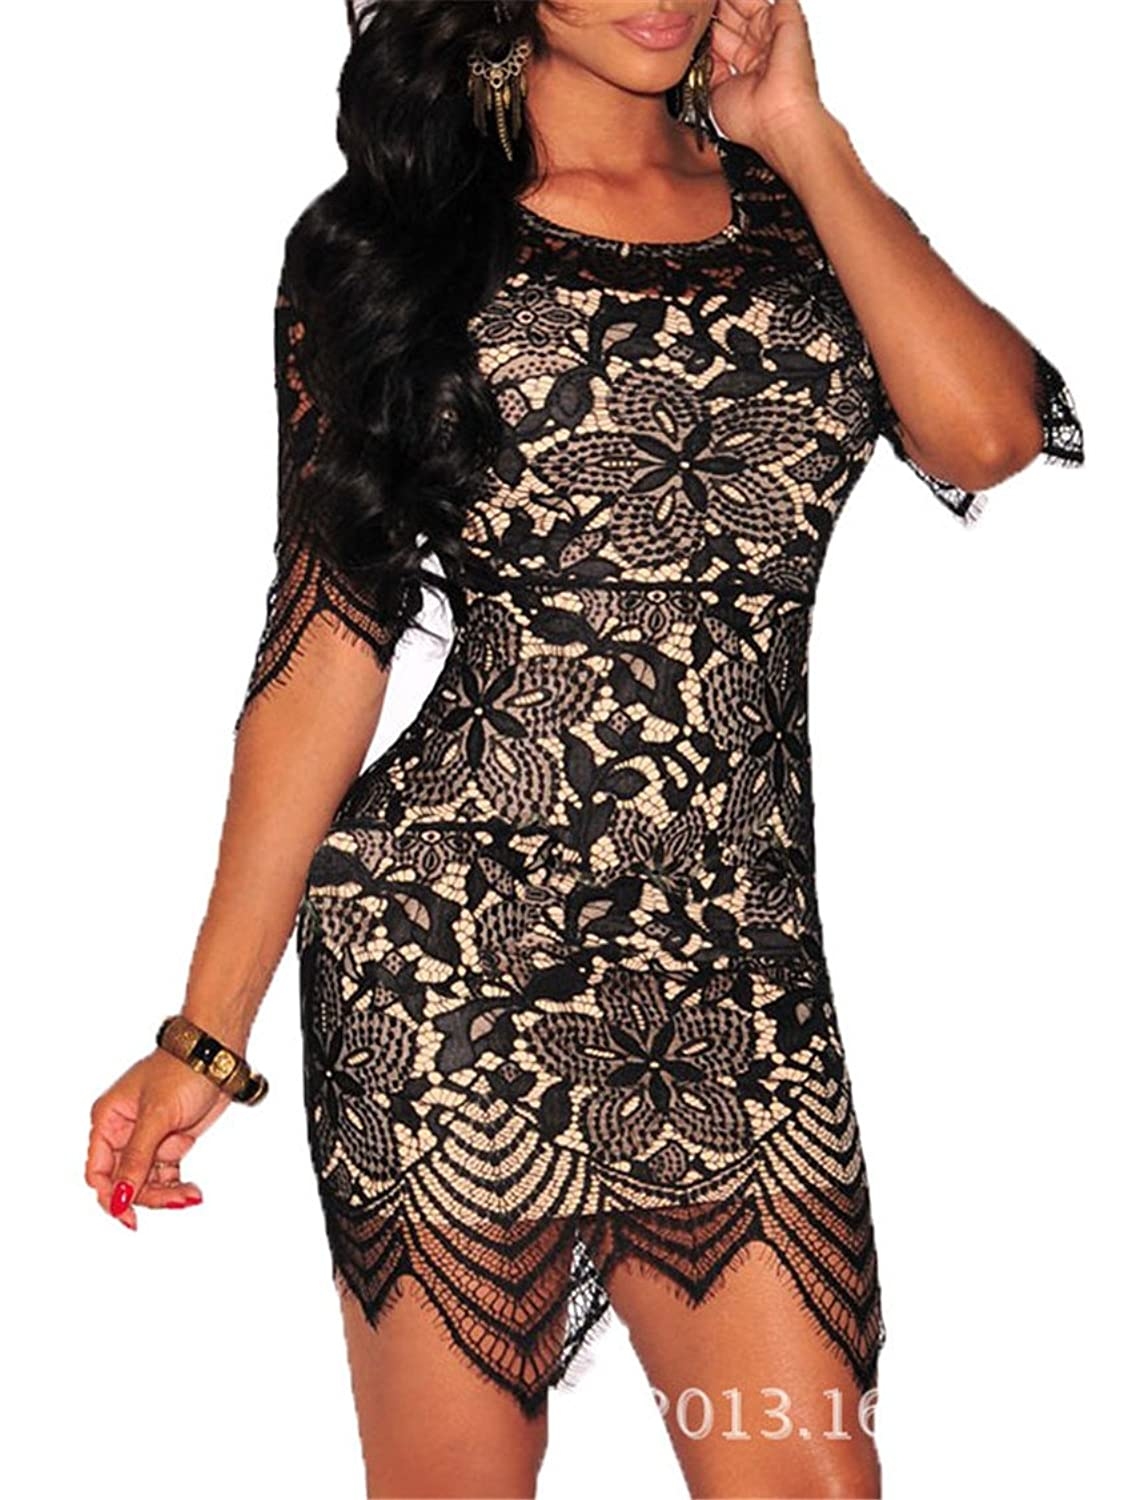 Women's Sexy Half-Sleeve Lace Crew Neck Cut Out Bandage Bodycon Party Mini Dress Clubwear